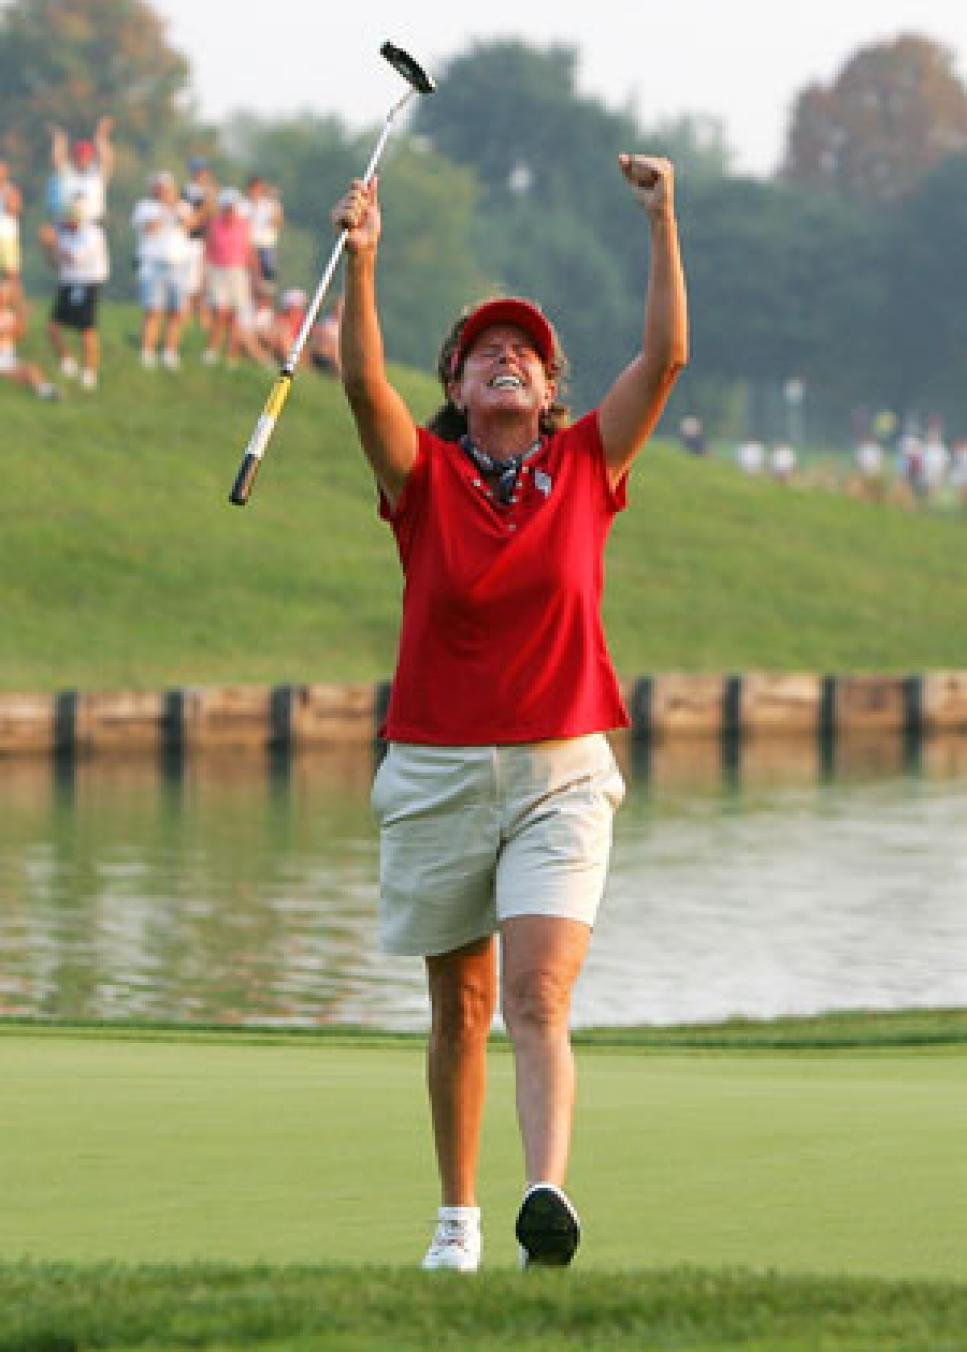 golf-digest-woman-blogs-golf-digest-woman-assets_c-2010-02-jones_300-thumb-300x422-10761.jpg